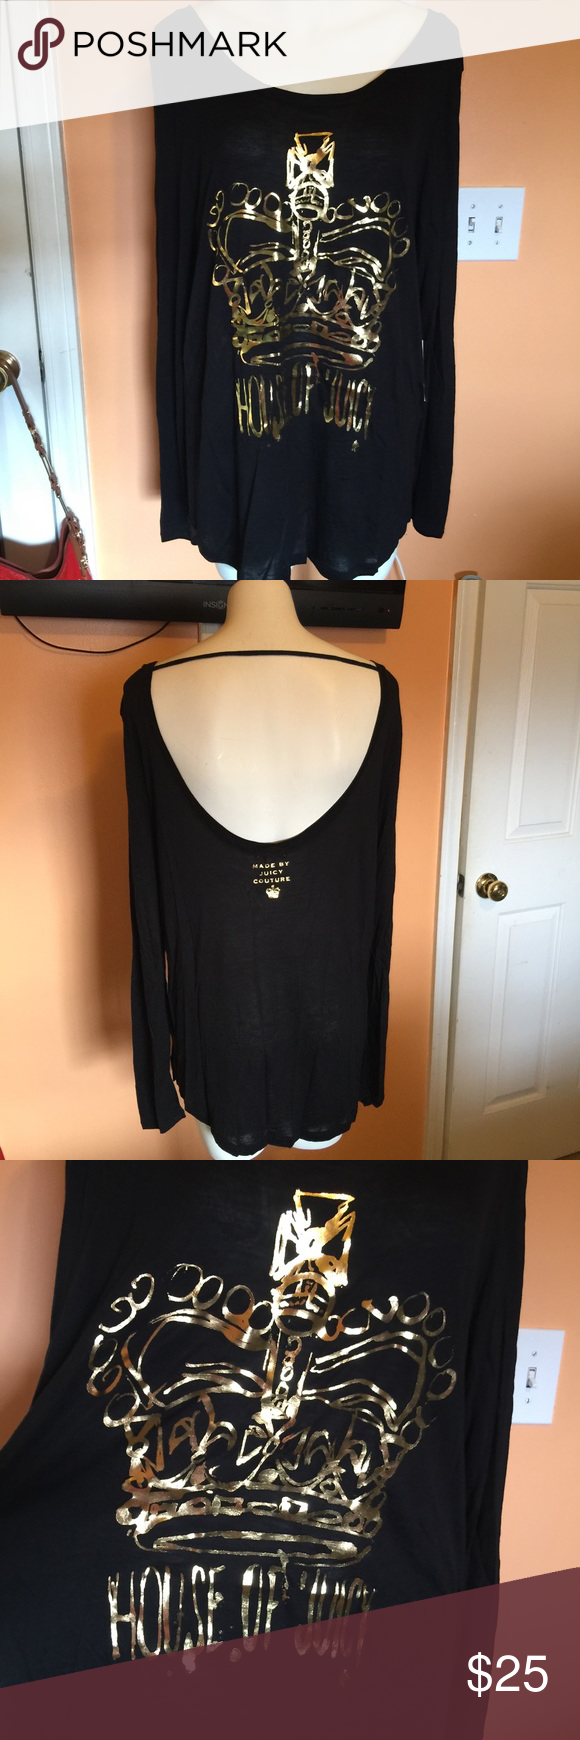 NWT House of Juicy long sleeve tee size XL New long sleeve tee with gold house of Juicy design on front. Back is open and sexy. Please make offers with offer button. Juicy Couture Tops Tees - Long Sleeve